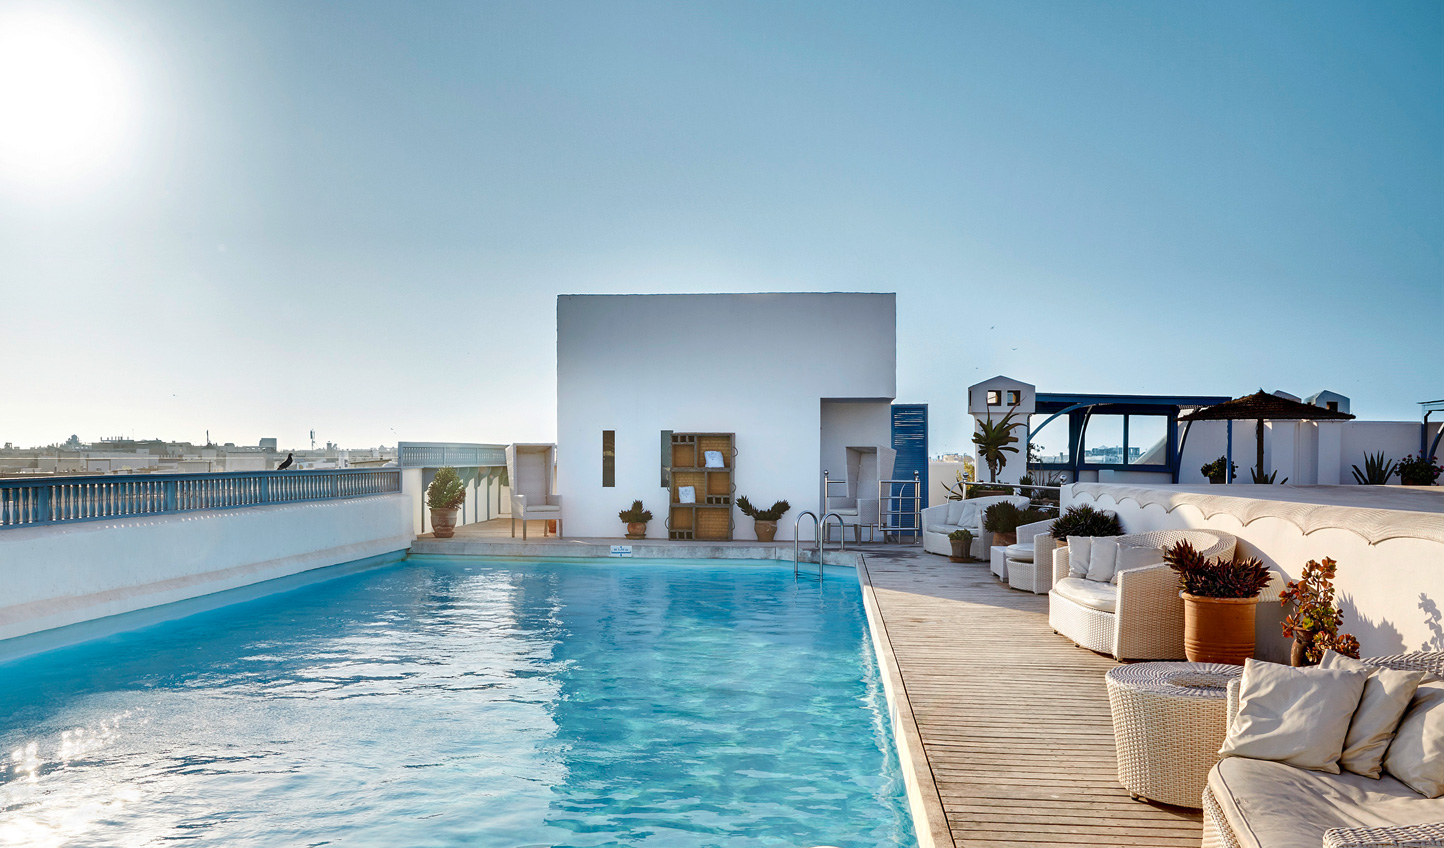 Enjoy sundrenched days dipping in and out of the rooftop pool